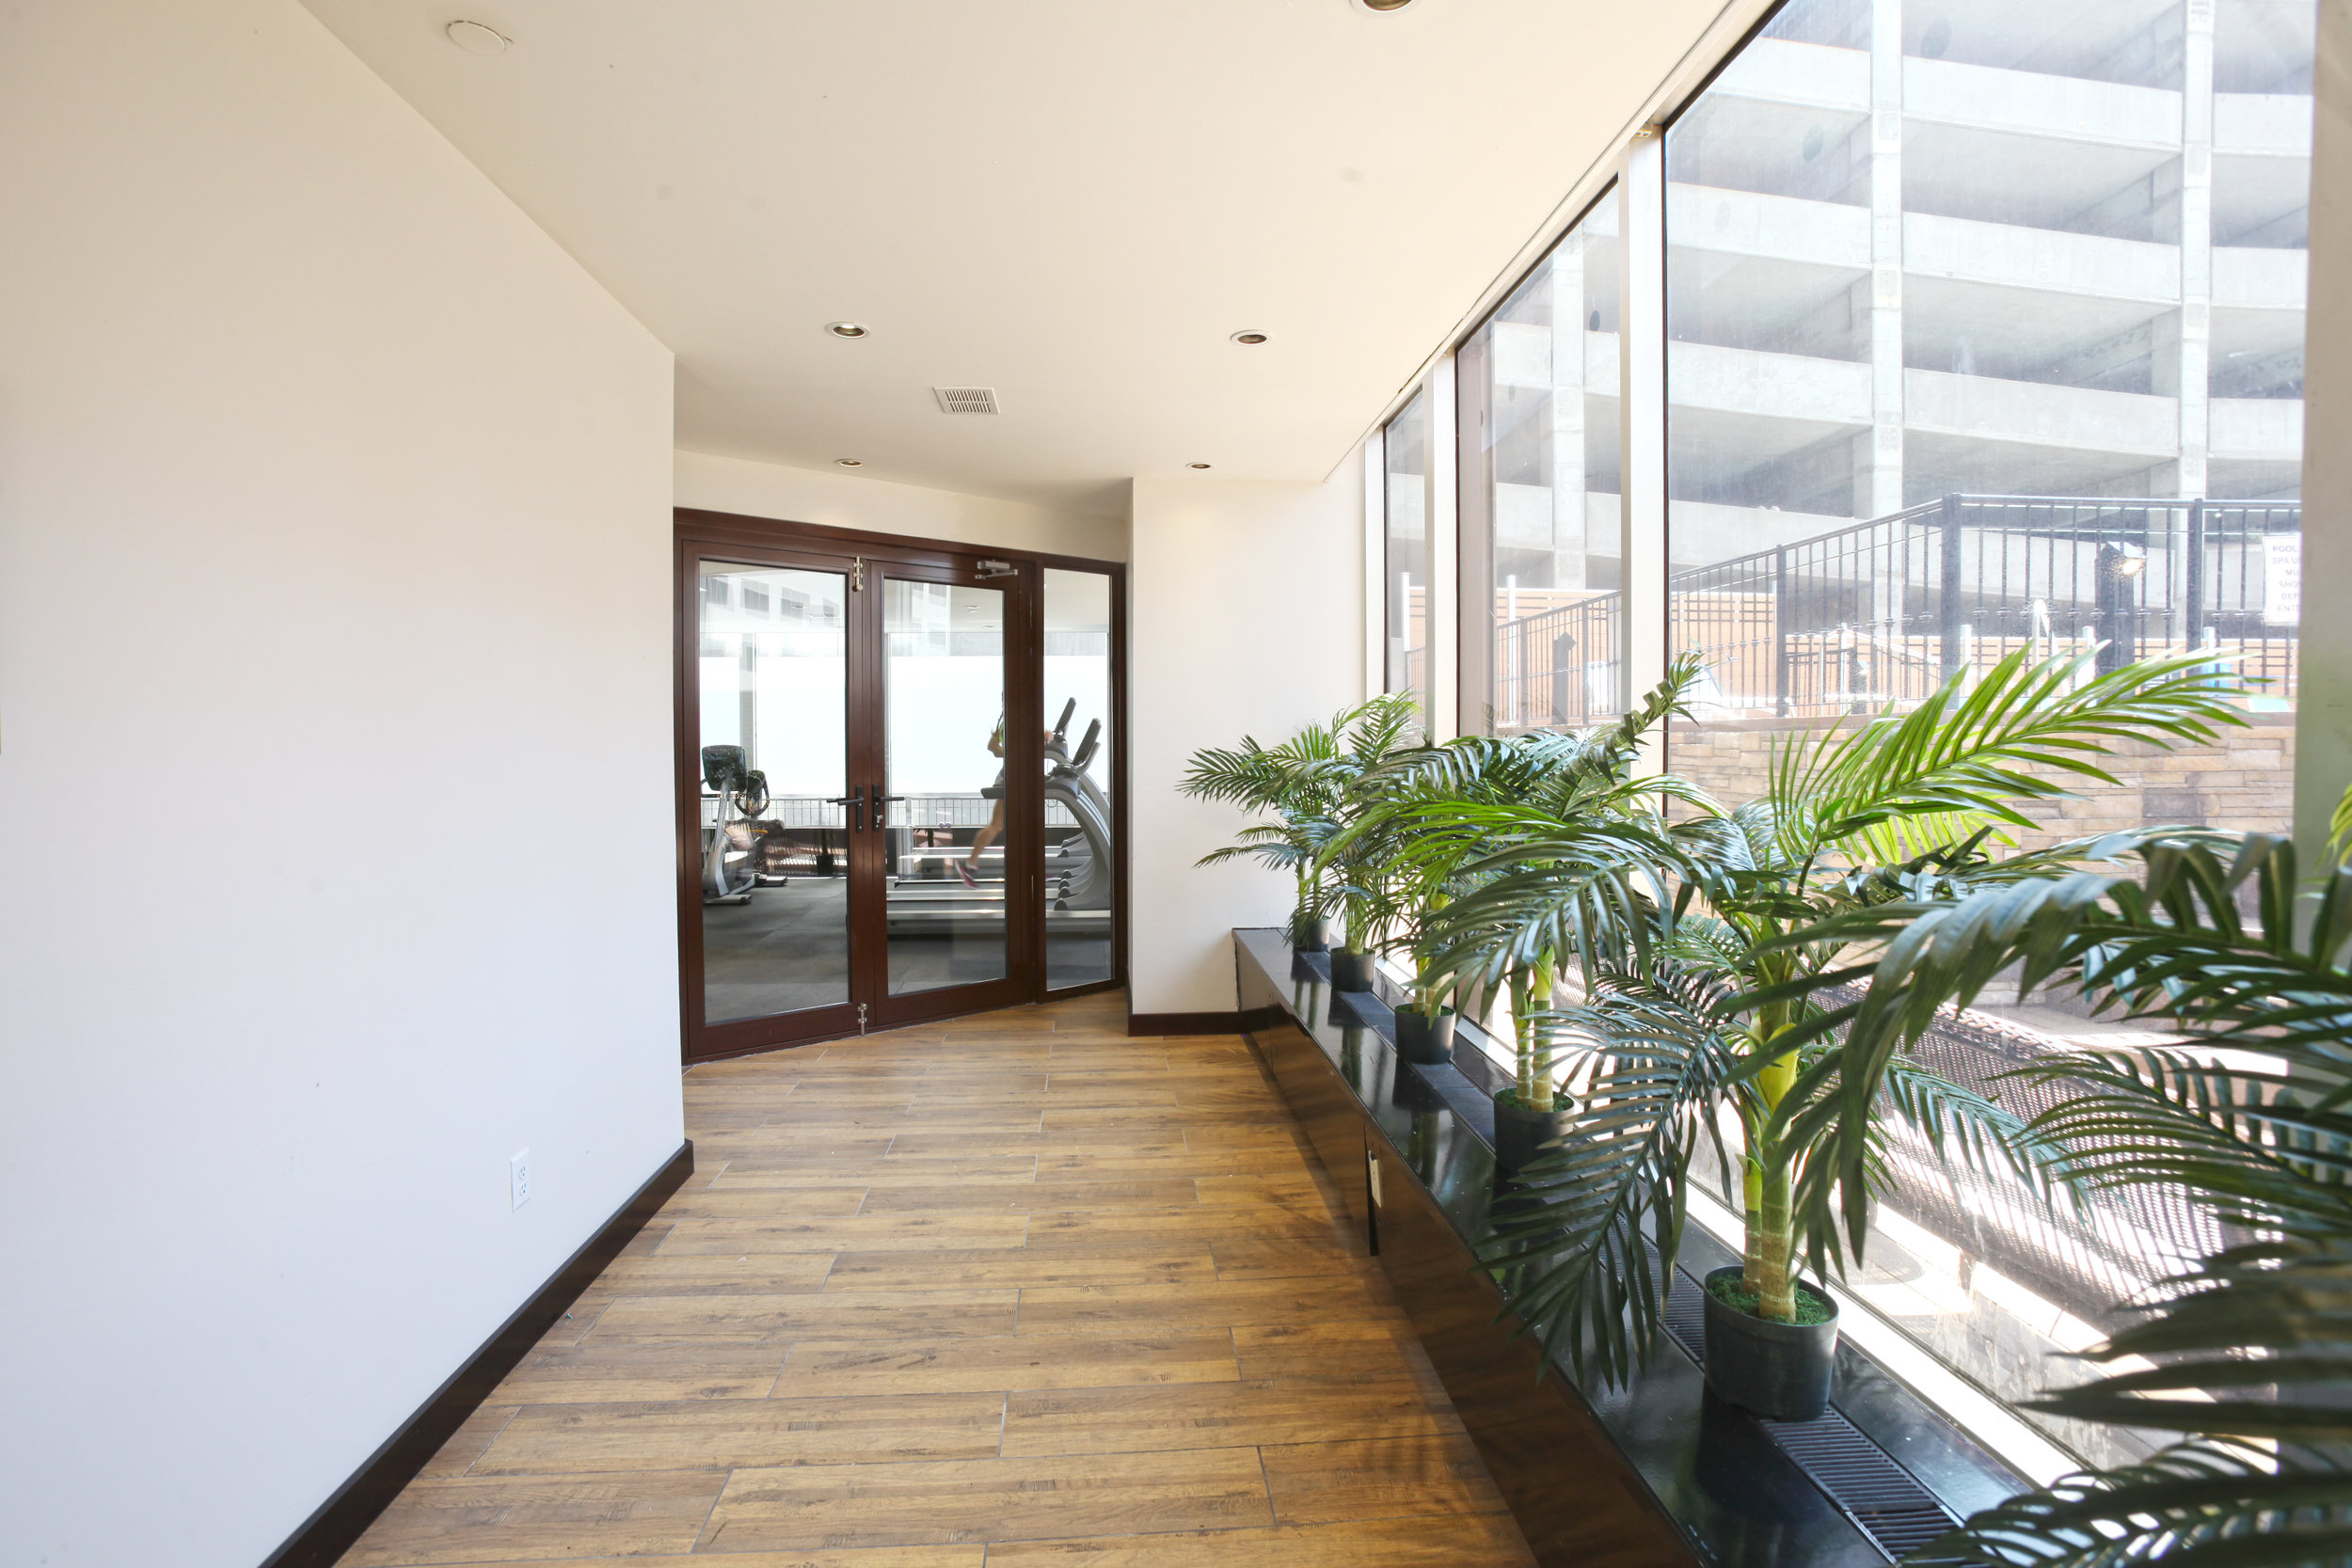 Gallery 720 — Luxury Apartments for Rent in St  Louis